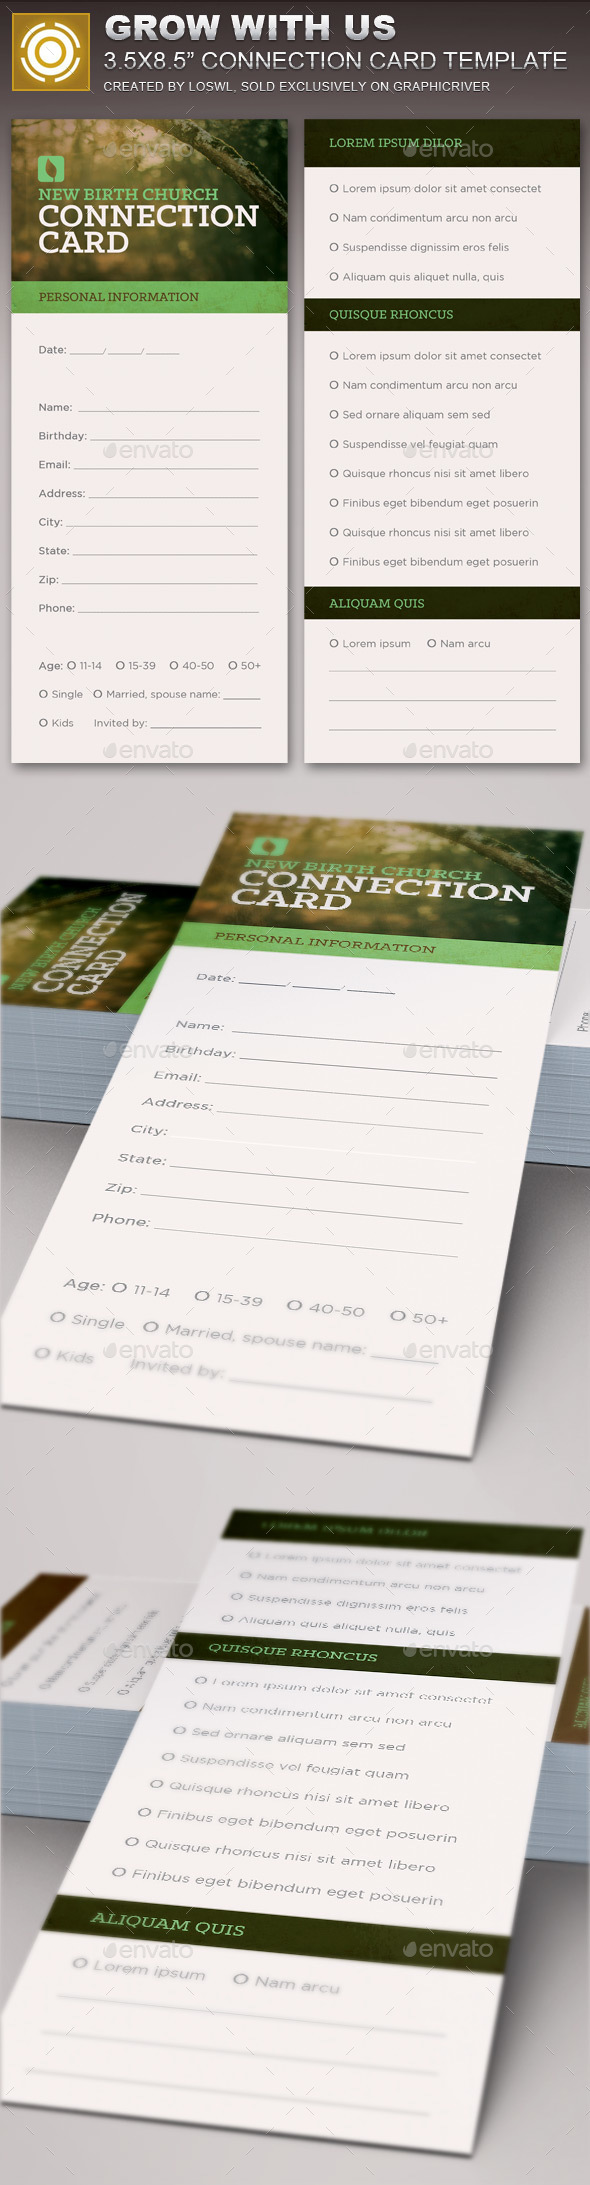 Grow With Us Connection Card Template - Cards & Invites Print Templates